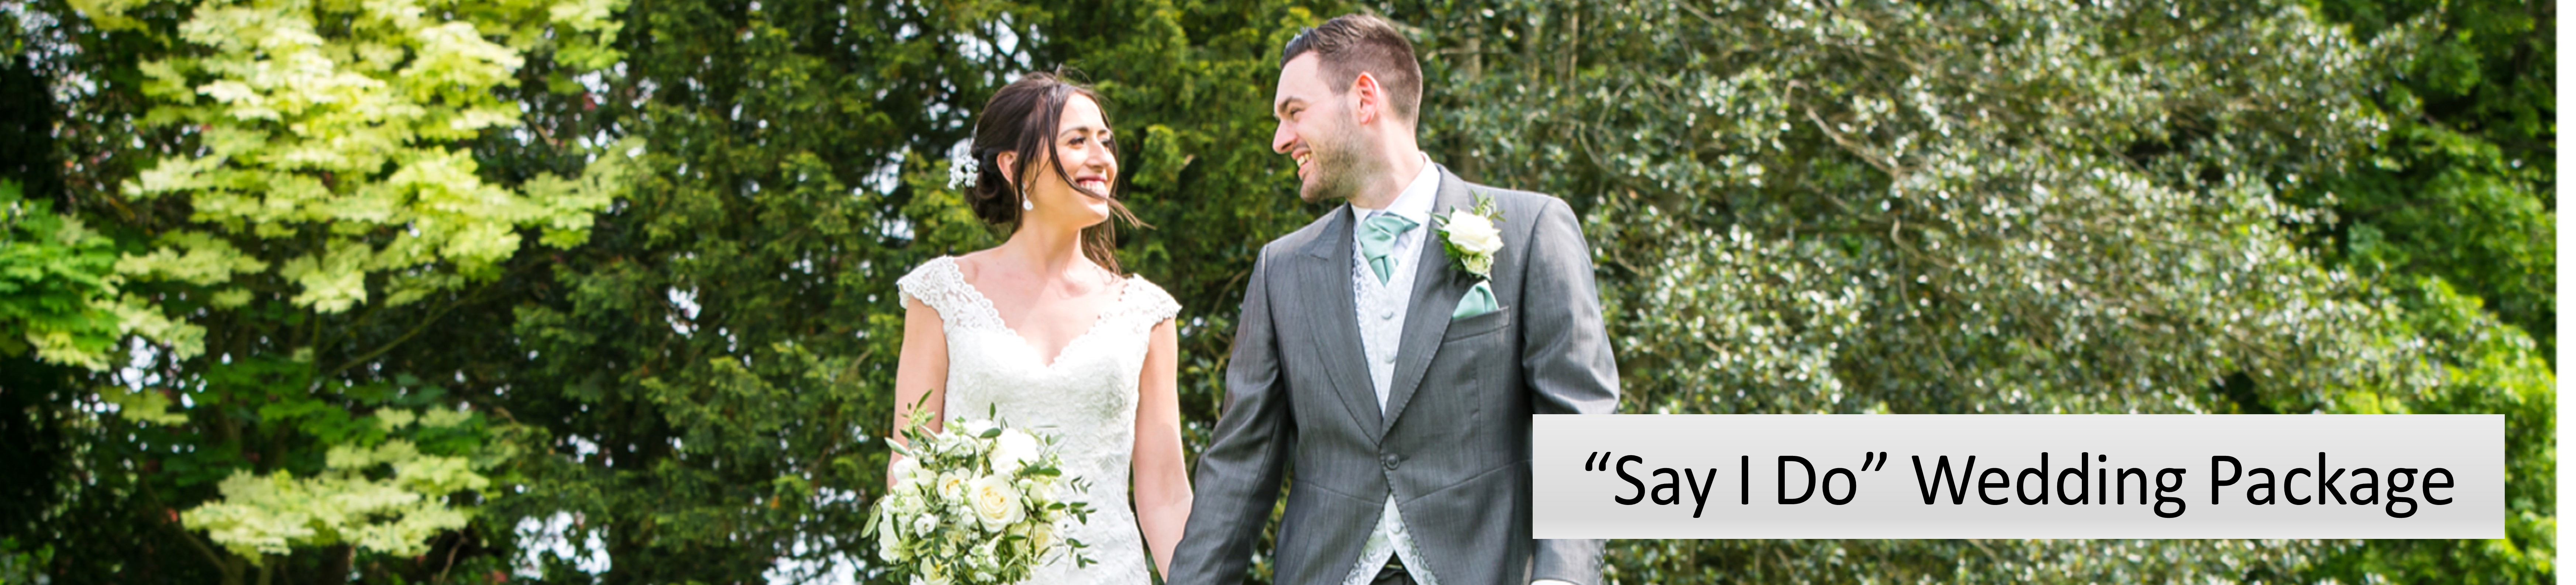 Weddings at Thornton Hall Hotel